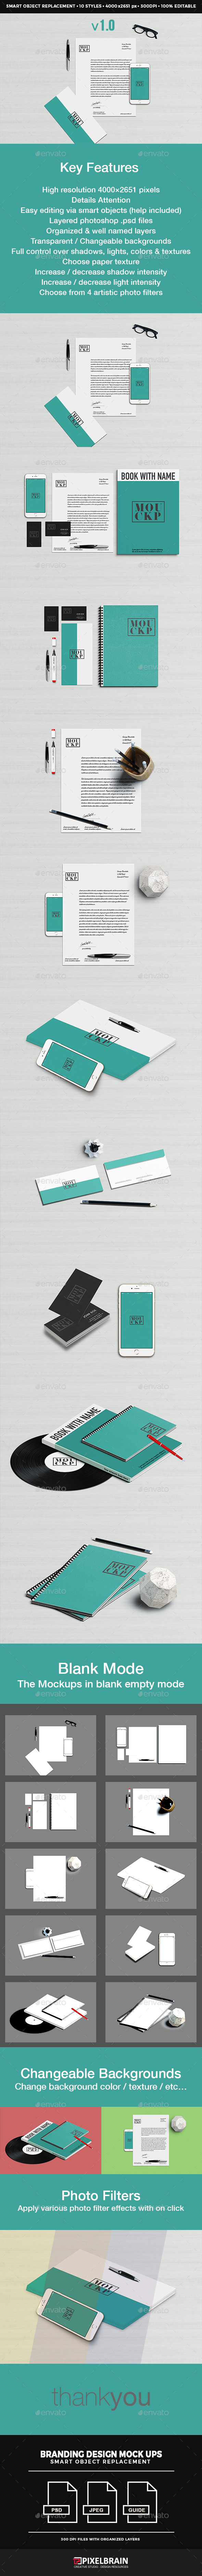 Stationery & Branding Mockup  Vol. 2 (Stationery)